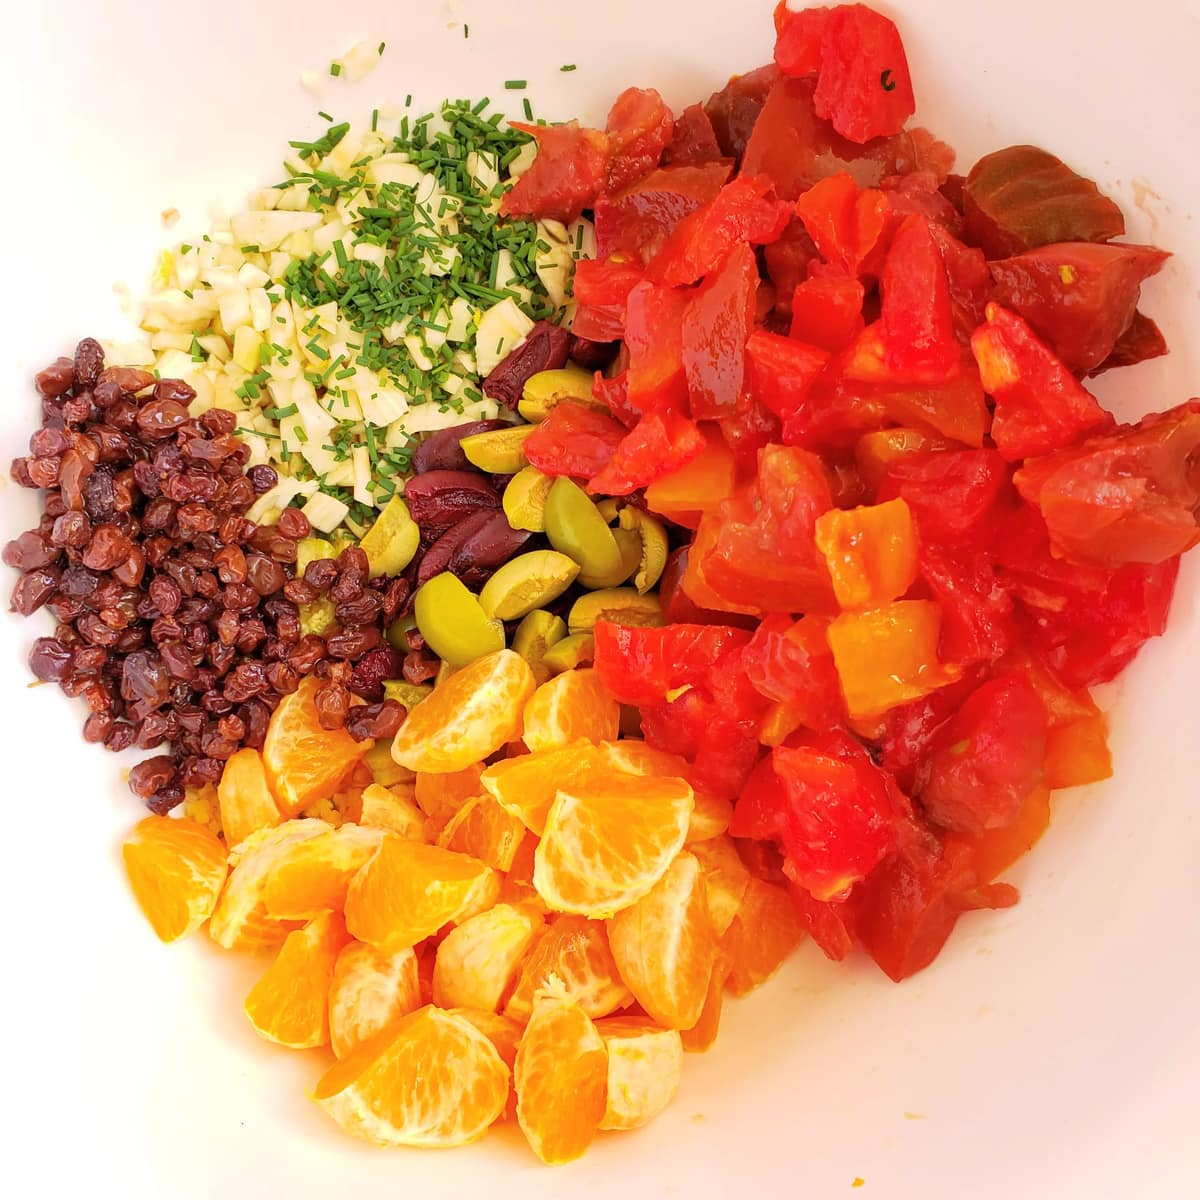 Toss the vegetables and fruits for Pasta with Tomatoes and Tangerines into a white mixing bowl